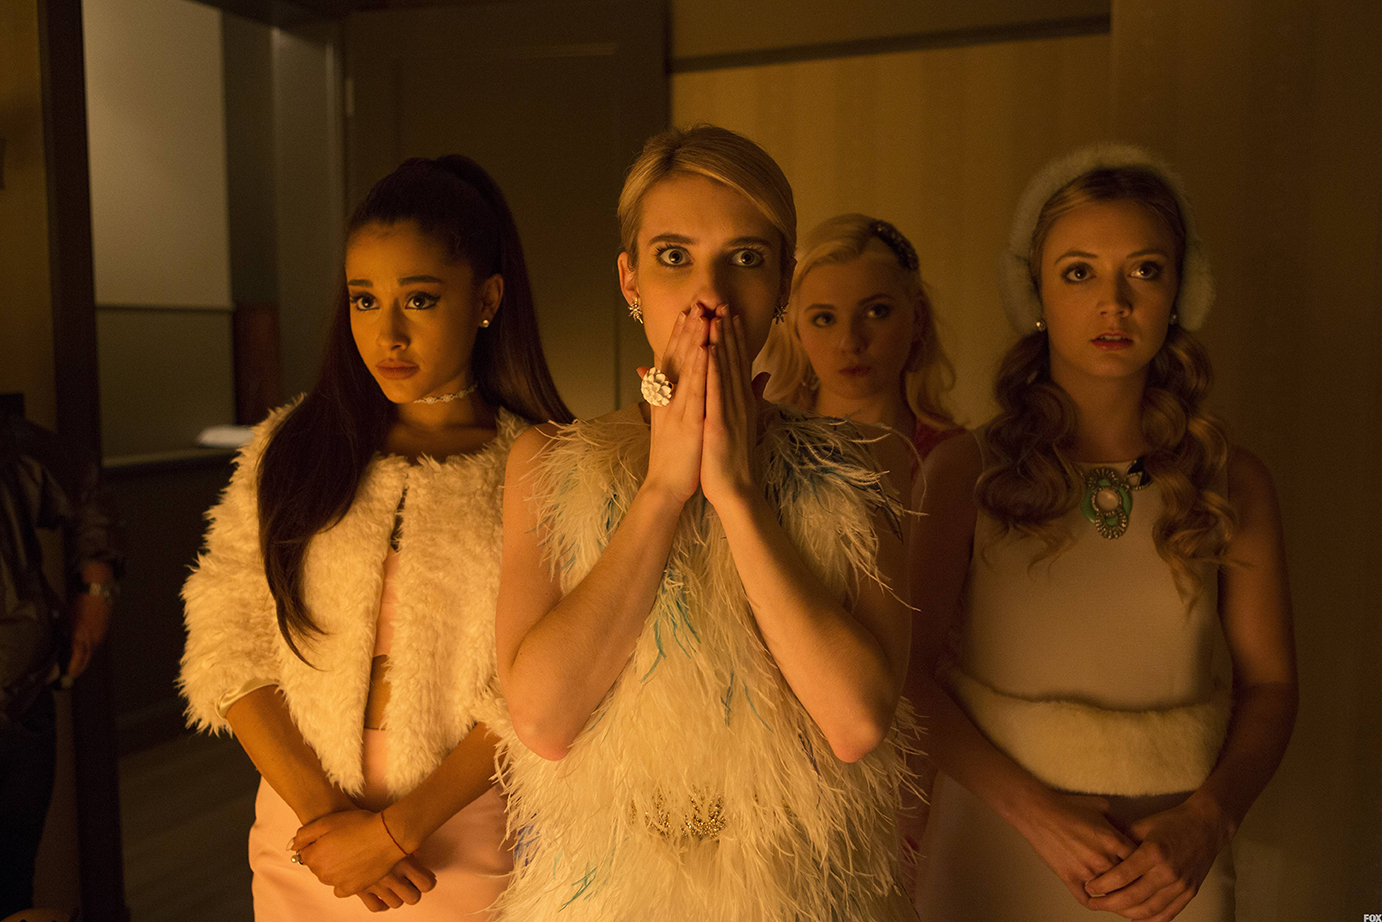 """(From left to right) Ariana Grande, Emma Roberts, Abigail Breslin and Billie Lourd make up """"the Chanels,"""" a clique of disproportionate power operating within their murder-stricken sorority. """"Scream Queens"""" is written by Ryan Murphy of """"American Horror Story"""" and Glee."""" It debuts Sept. 22 on FOX. (Courtesy/Fox)"""